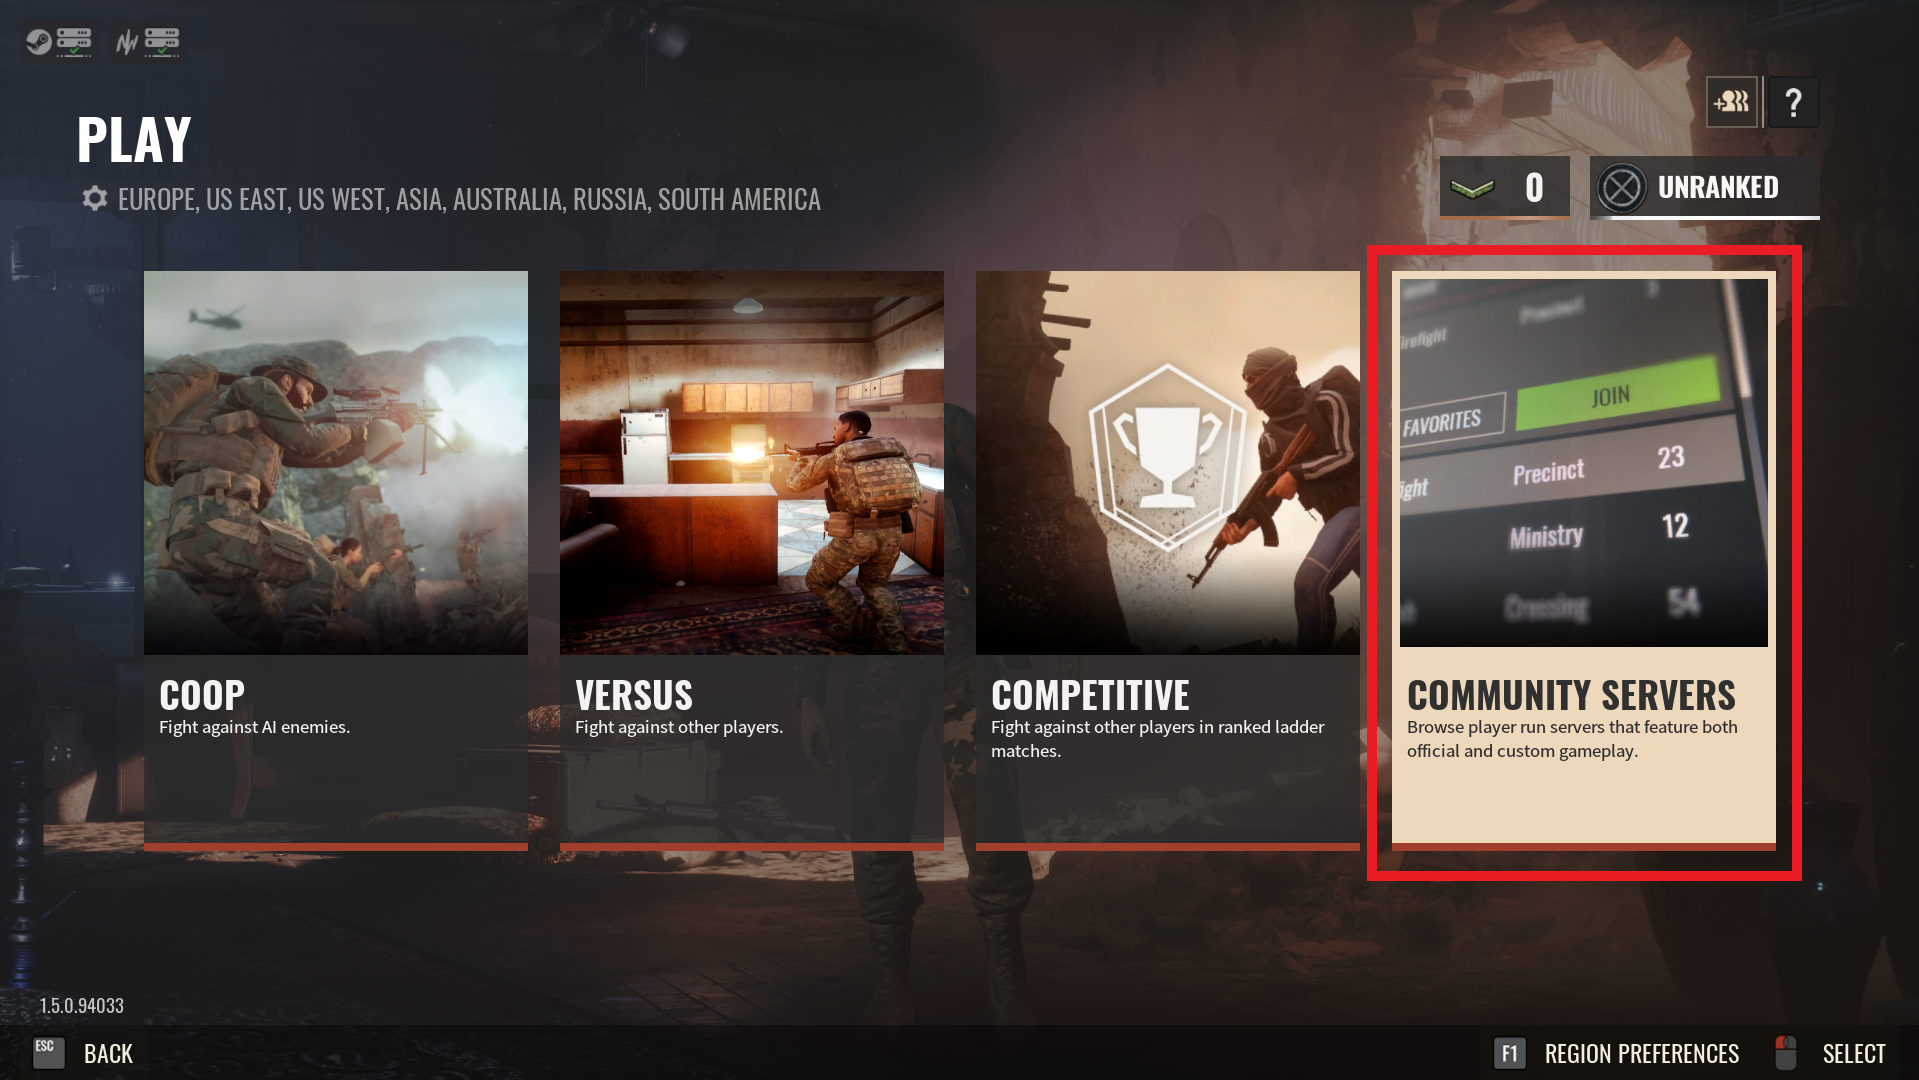 A view of the gamemode selection screen for the game Insurgency Sandstorm